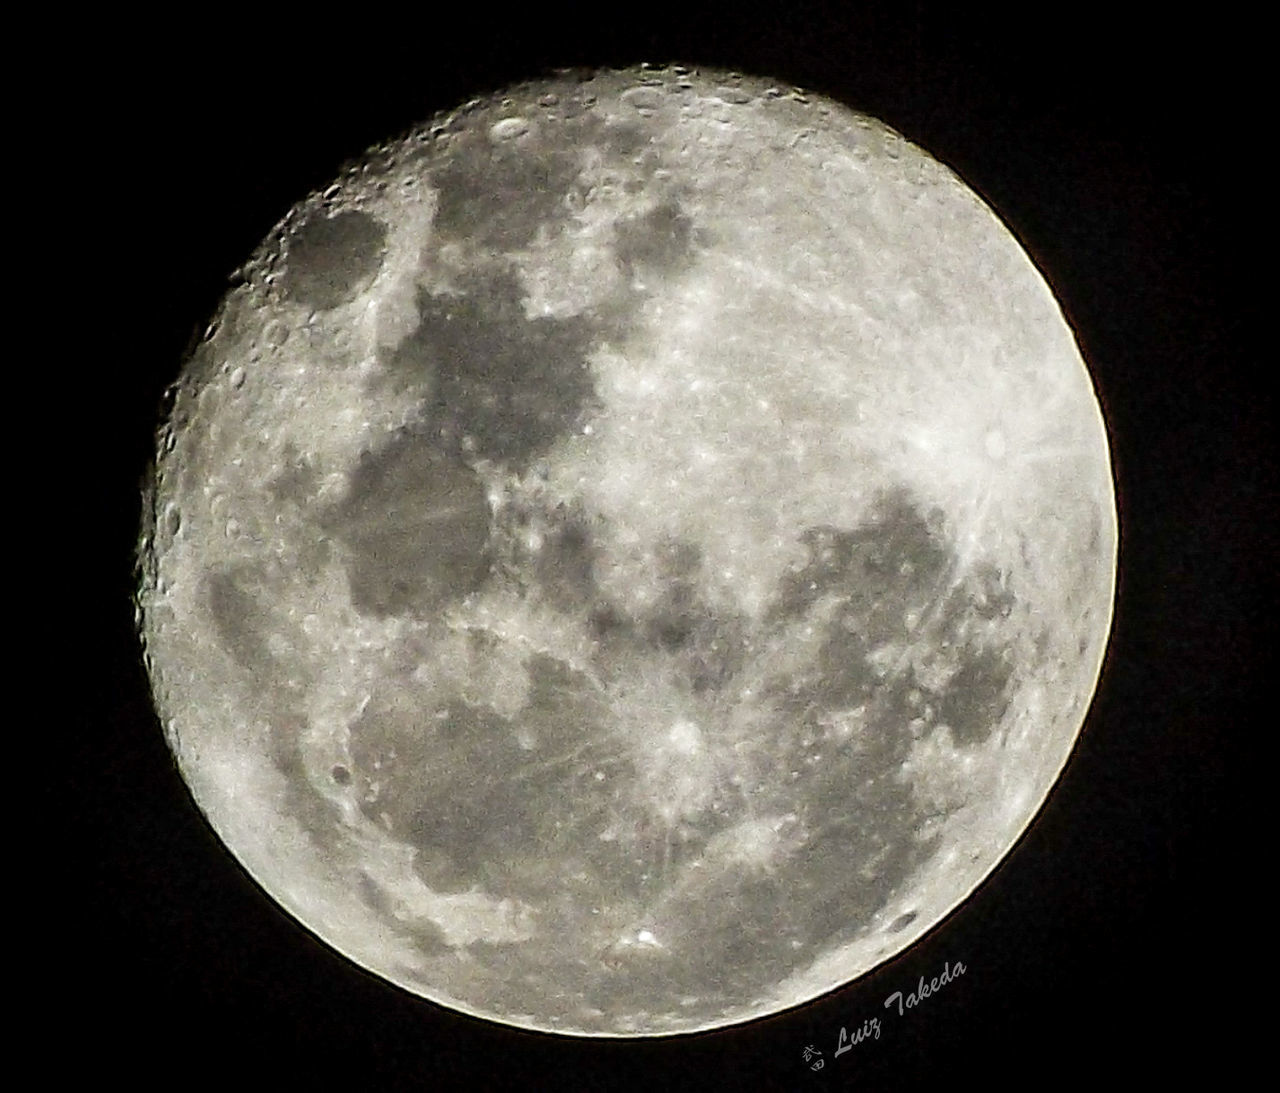 moon, night, full moon, astronomy, moon surface, planetary moon, circle, beauty in nature, nature, tranquility, moonlight, low angle view, discovery, scenics, no people, space exploration, close-up, sky, outdoors, half moon, space, clear sky